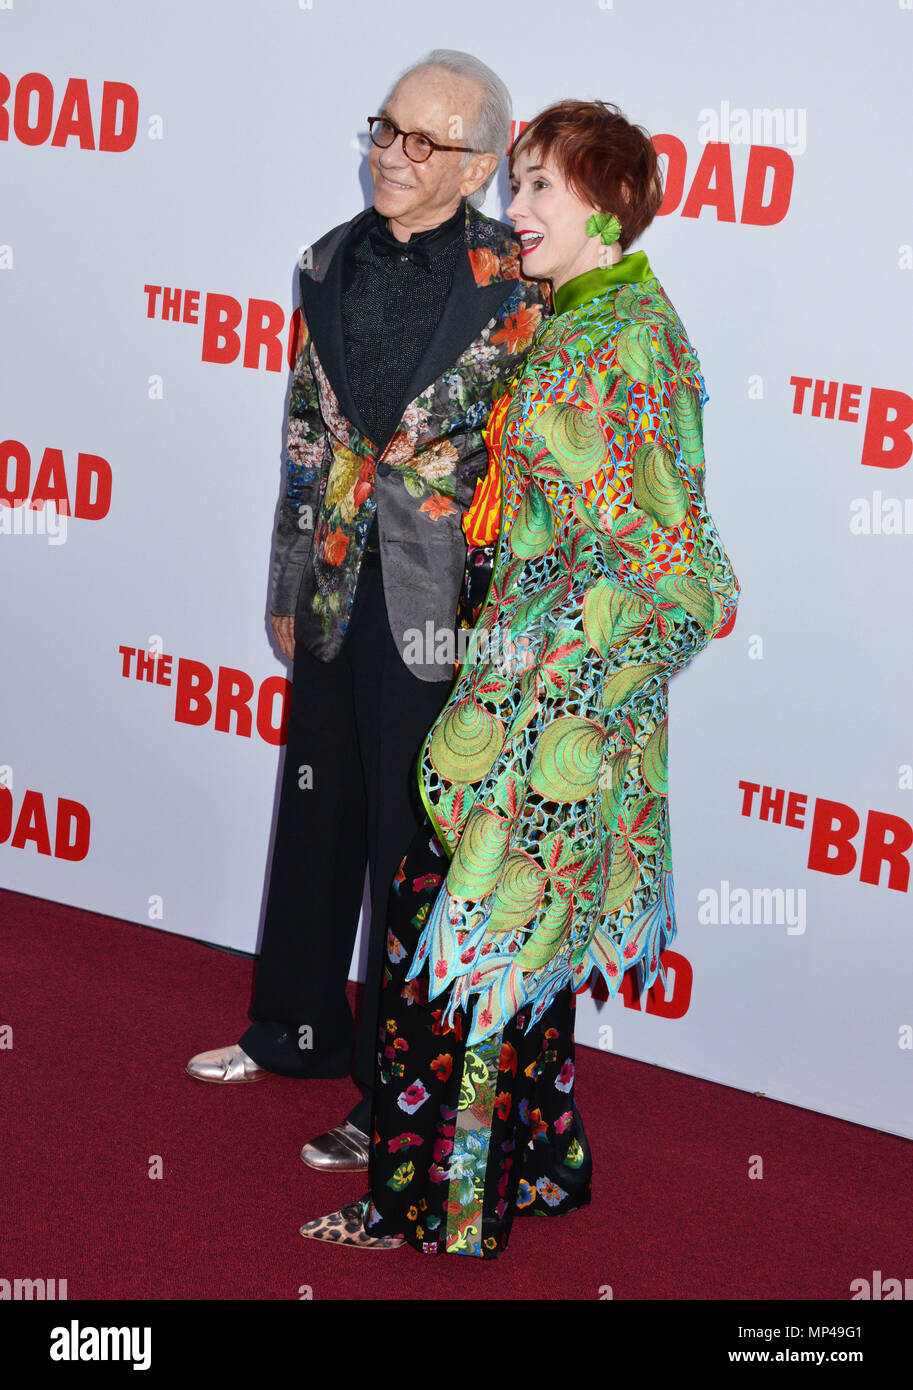 Norman Stone, Nora Stone at The Broad Museum Opening and Inaugural Dinner at the Broad Museum in Los Angeles. September 17, 2015.Norman Stone, Nora Stone ------------- Red Carpet Event, Vertical, USA, Film Industry, Celebrities,  Photography, Bestof, Arts Culture and Entertainment, Topix Celebrities fashion /  Vertical, Best of, Event in Hollywood Life - California,  Red Carpet and backstage, USA, Film Industry, Celebrities,  movie celebrities, TV celebrities, Music celebrities, Photography, Bestof, Arts Culture and Entertainment,  Topix, vertical,  family from from the year , 2015, inquiry ts - Stock Image